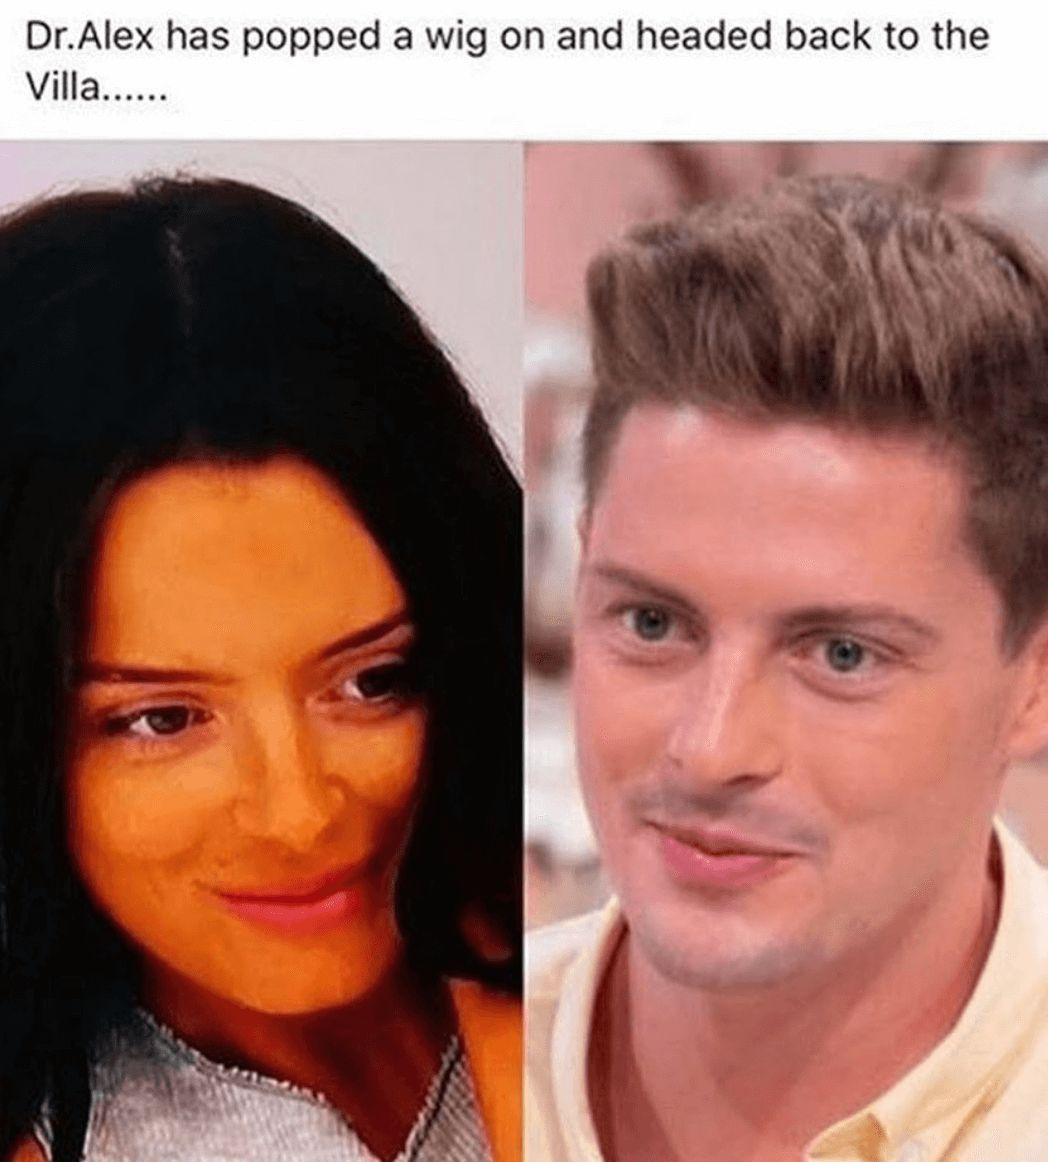 Image may contain: Love Island week two memes, Love Island, memes, reactions, tweet, funny, savage, meme, Dr Alex, Maura, Hair, Face, Human, Person